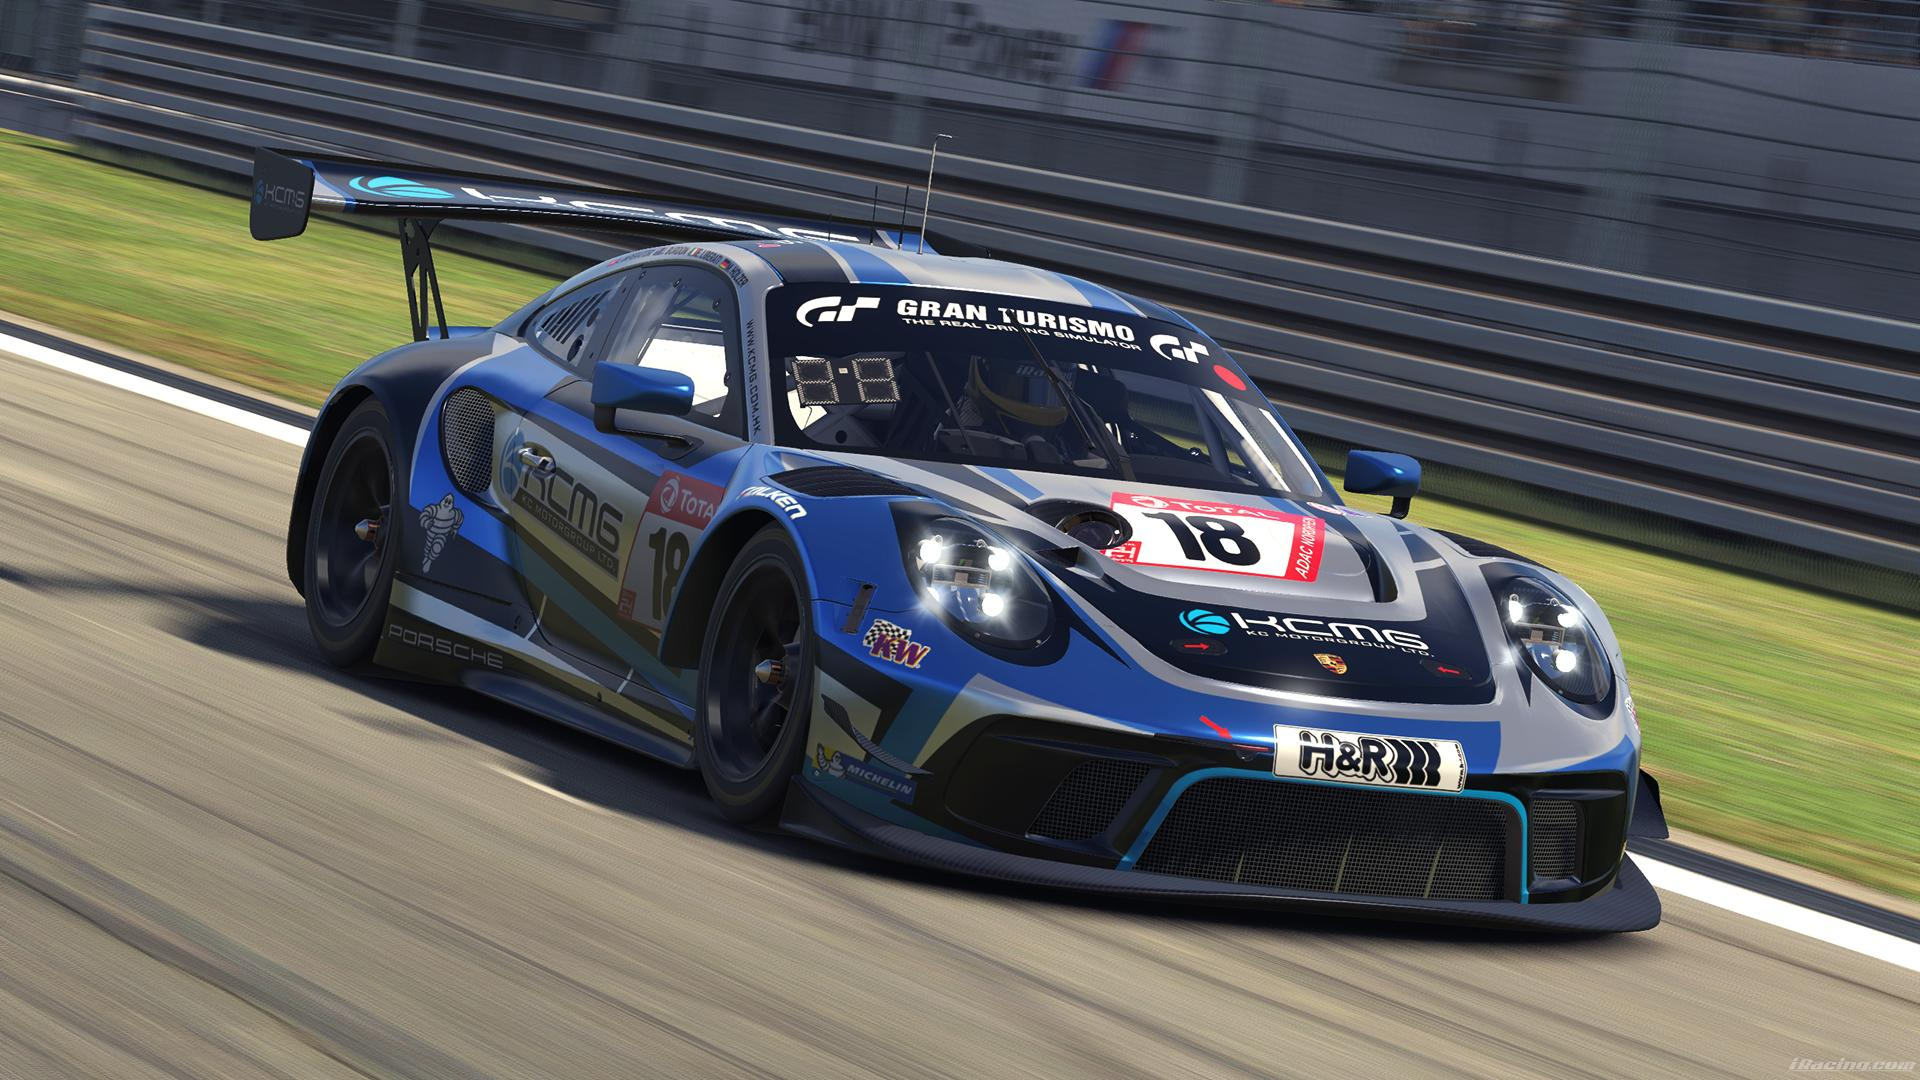 Preview of Official - KCMG #18 - 2021 24H Nürburgring by Thomas Sieger